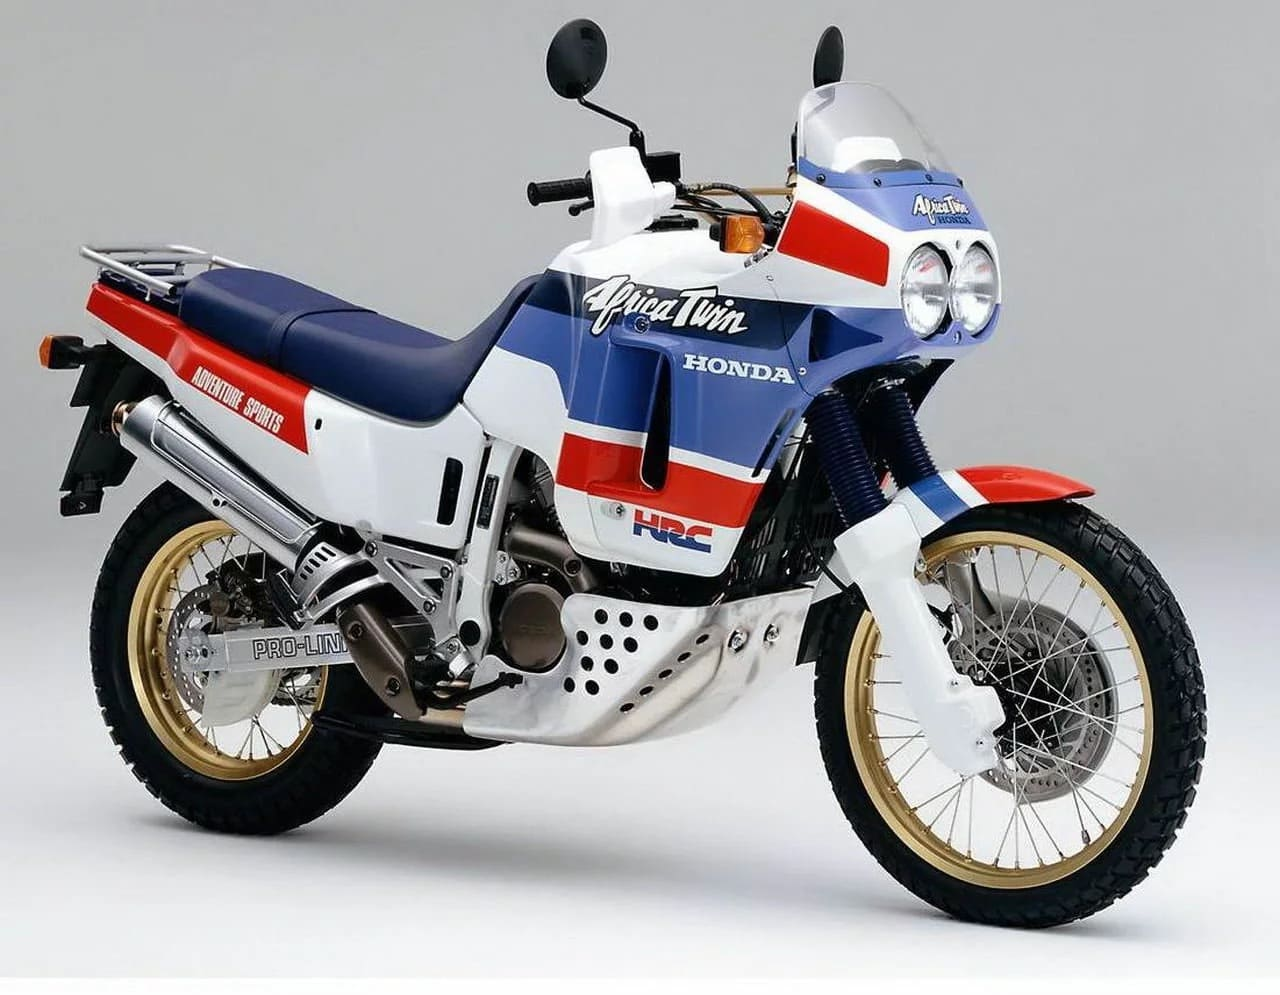 The original Honda Africa Twin XRV750